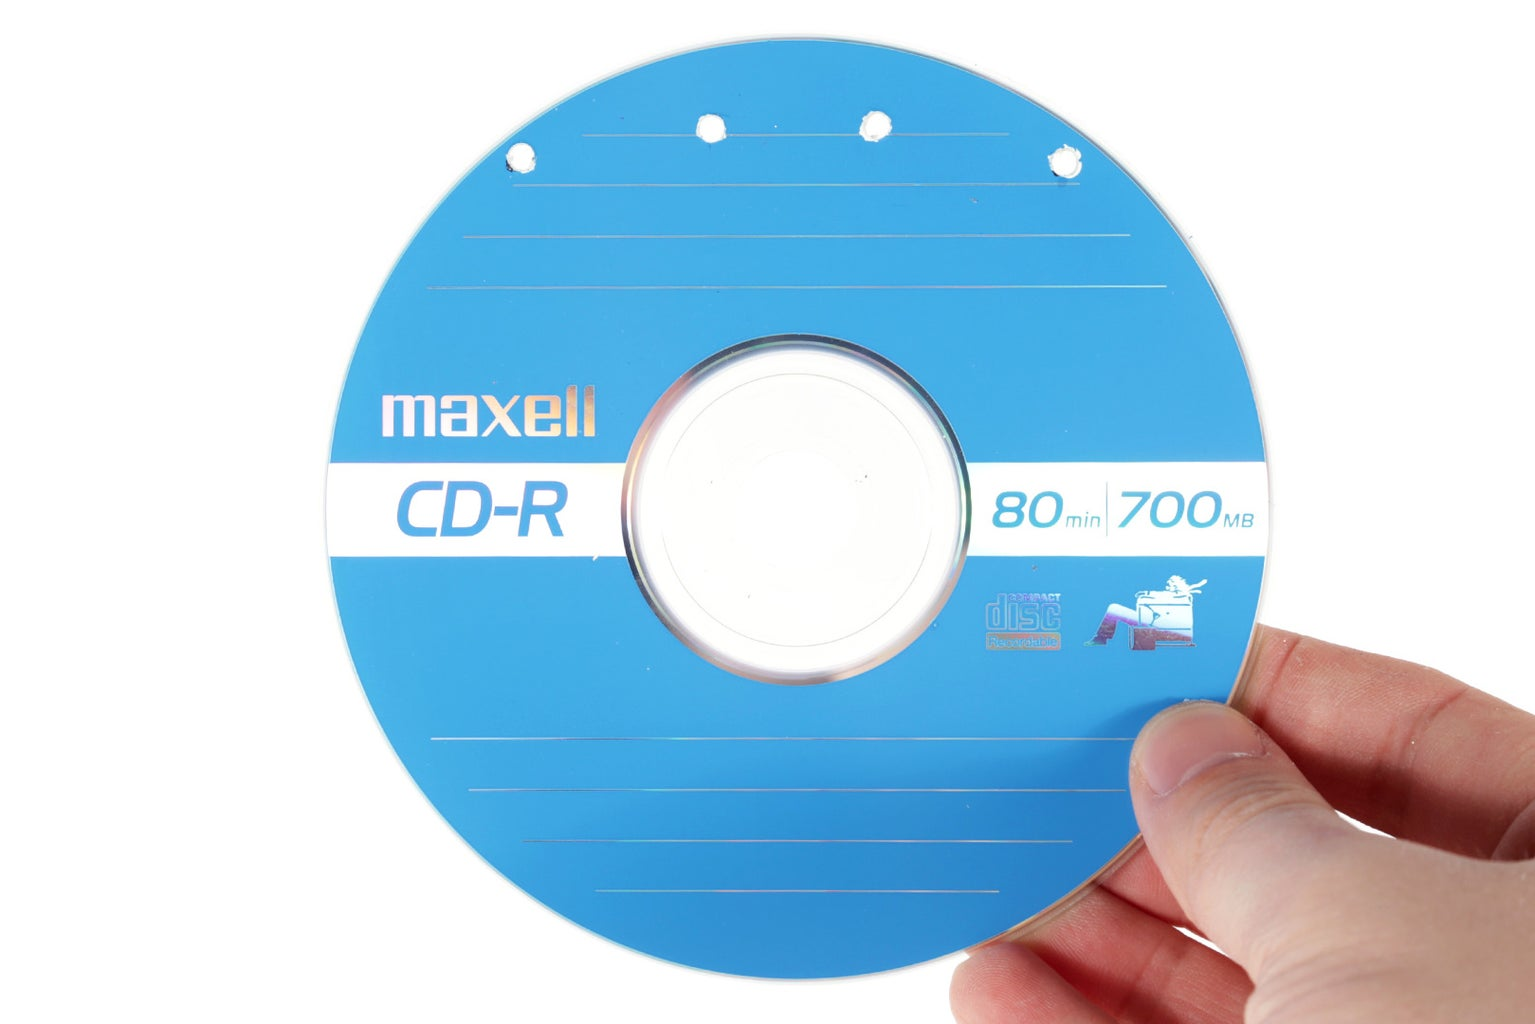 Mark and Drill the CD